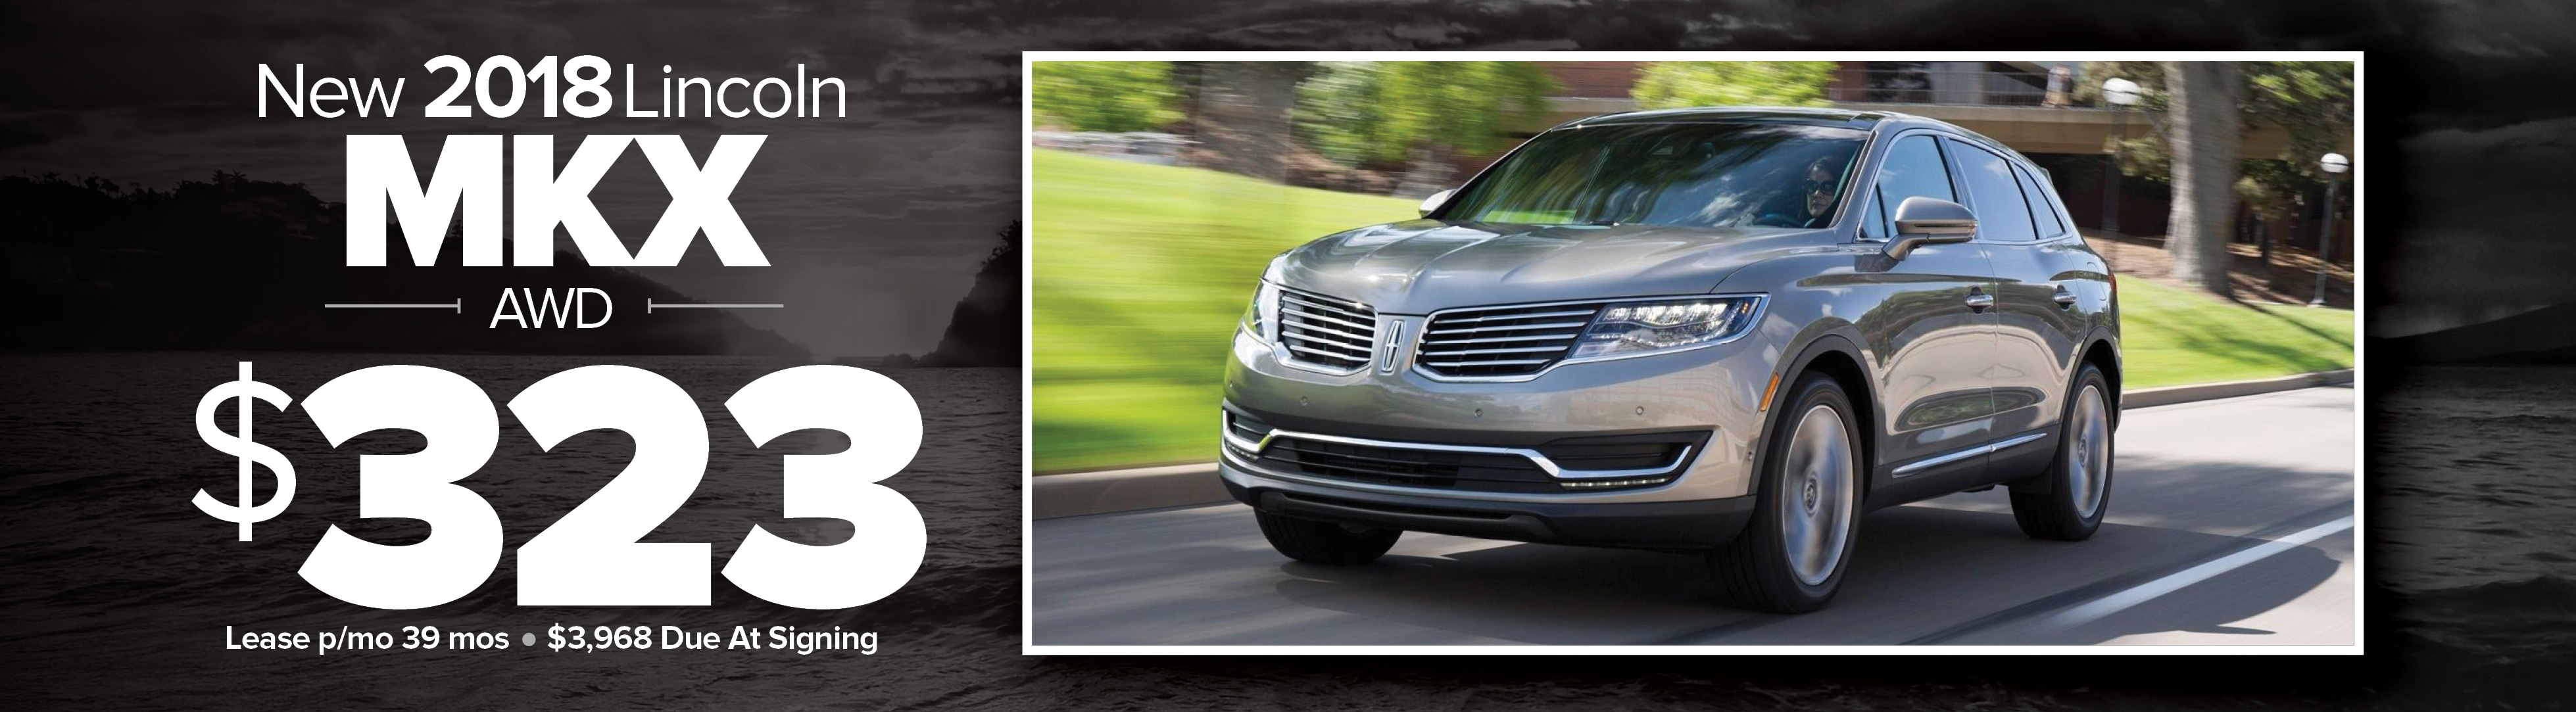 lease ads lincoln mkx sl azrm